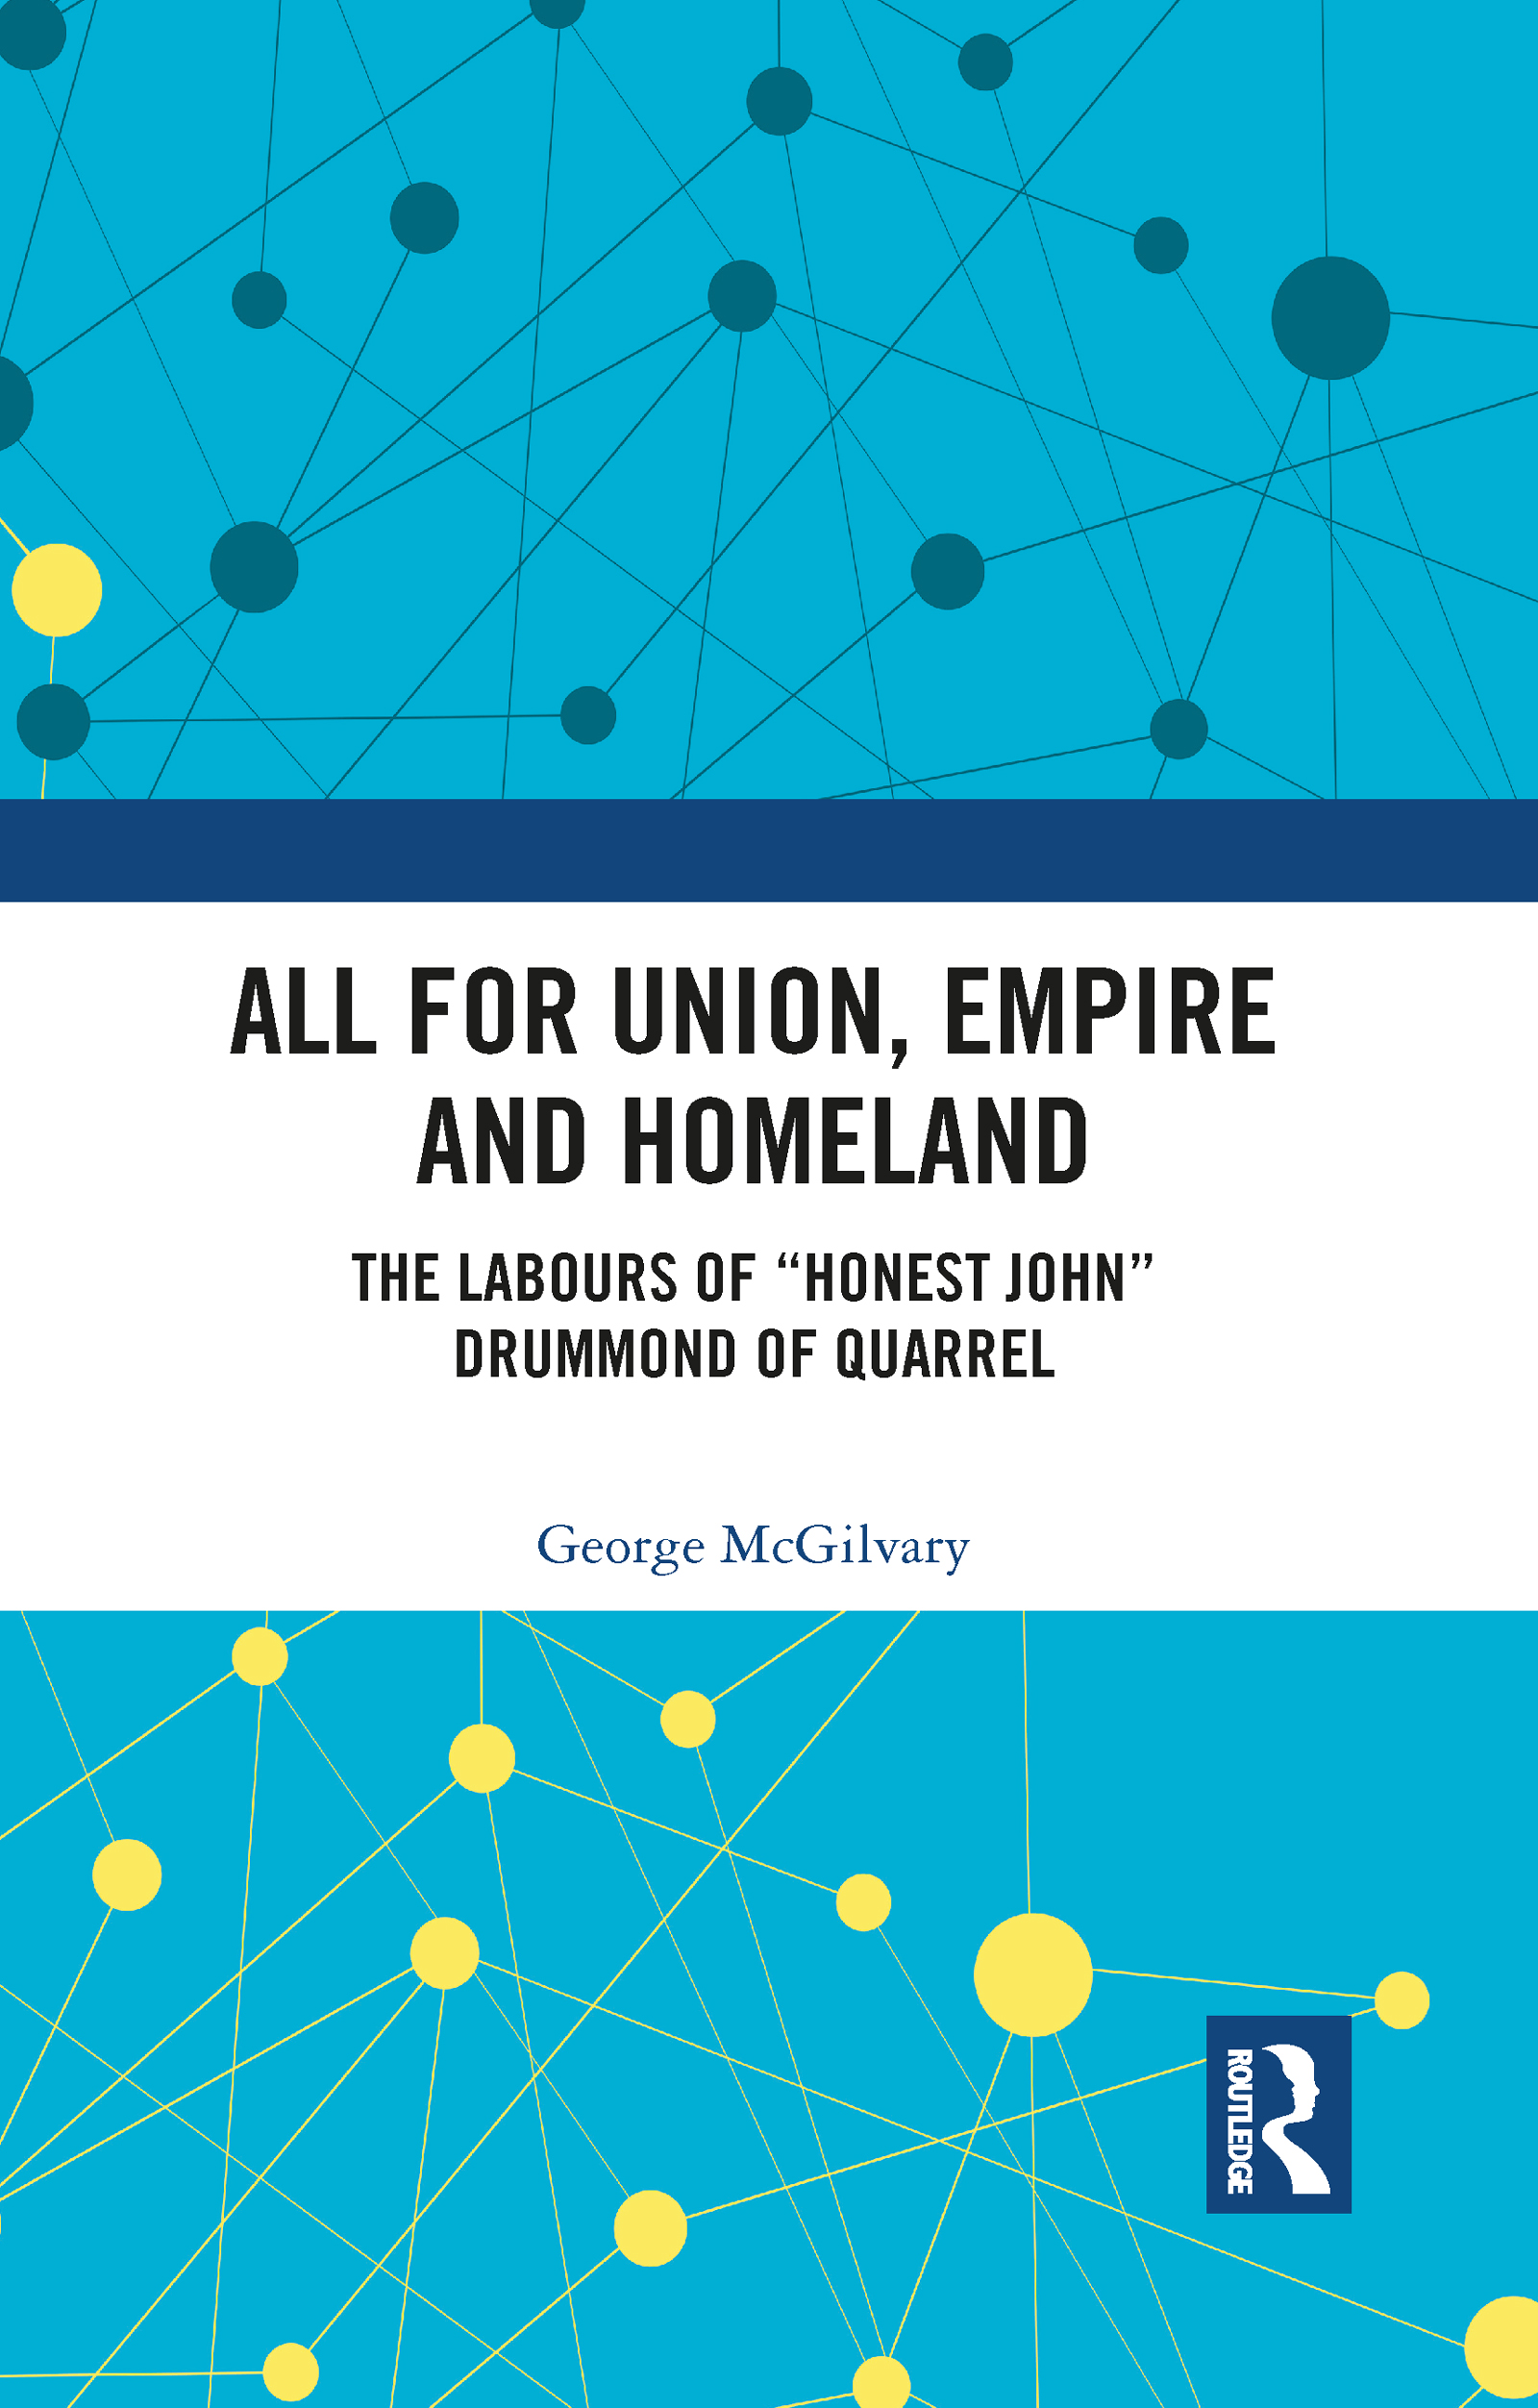 All for Union, Empire and Homeland